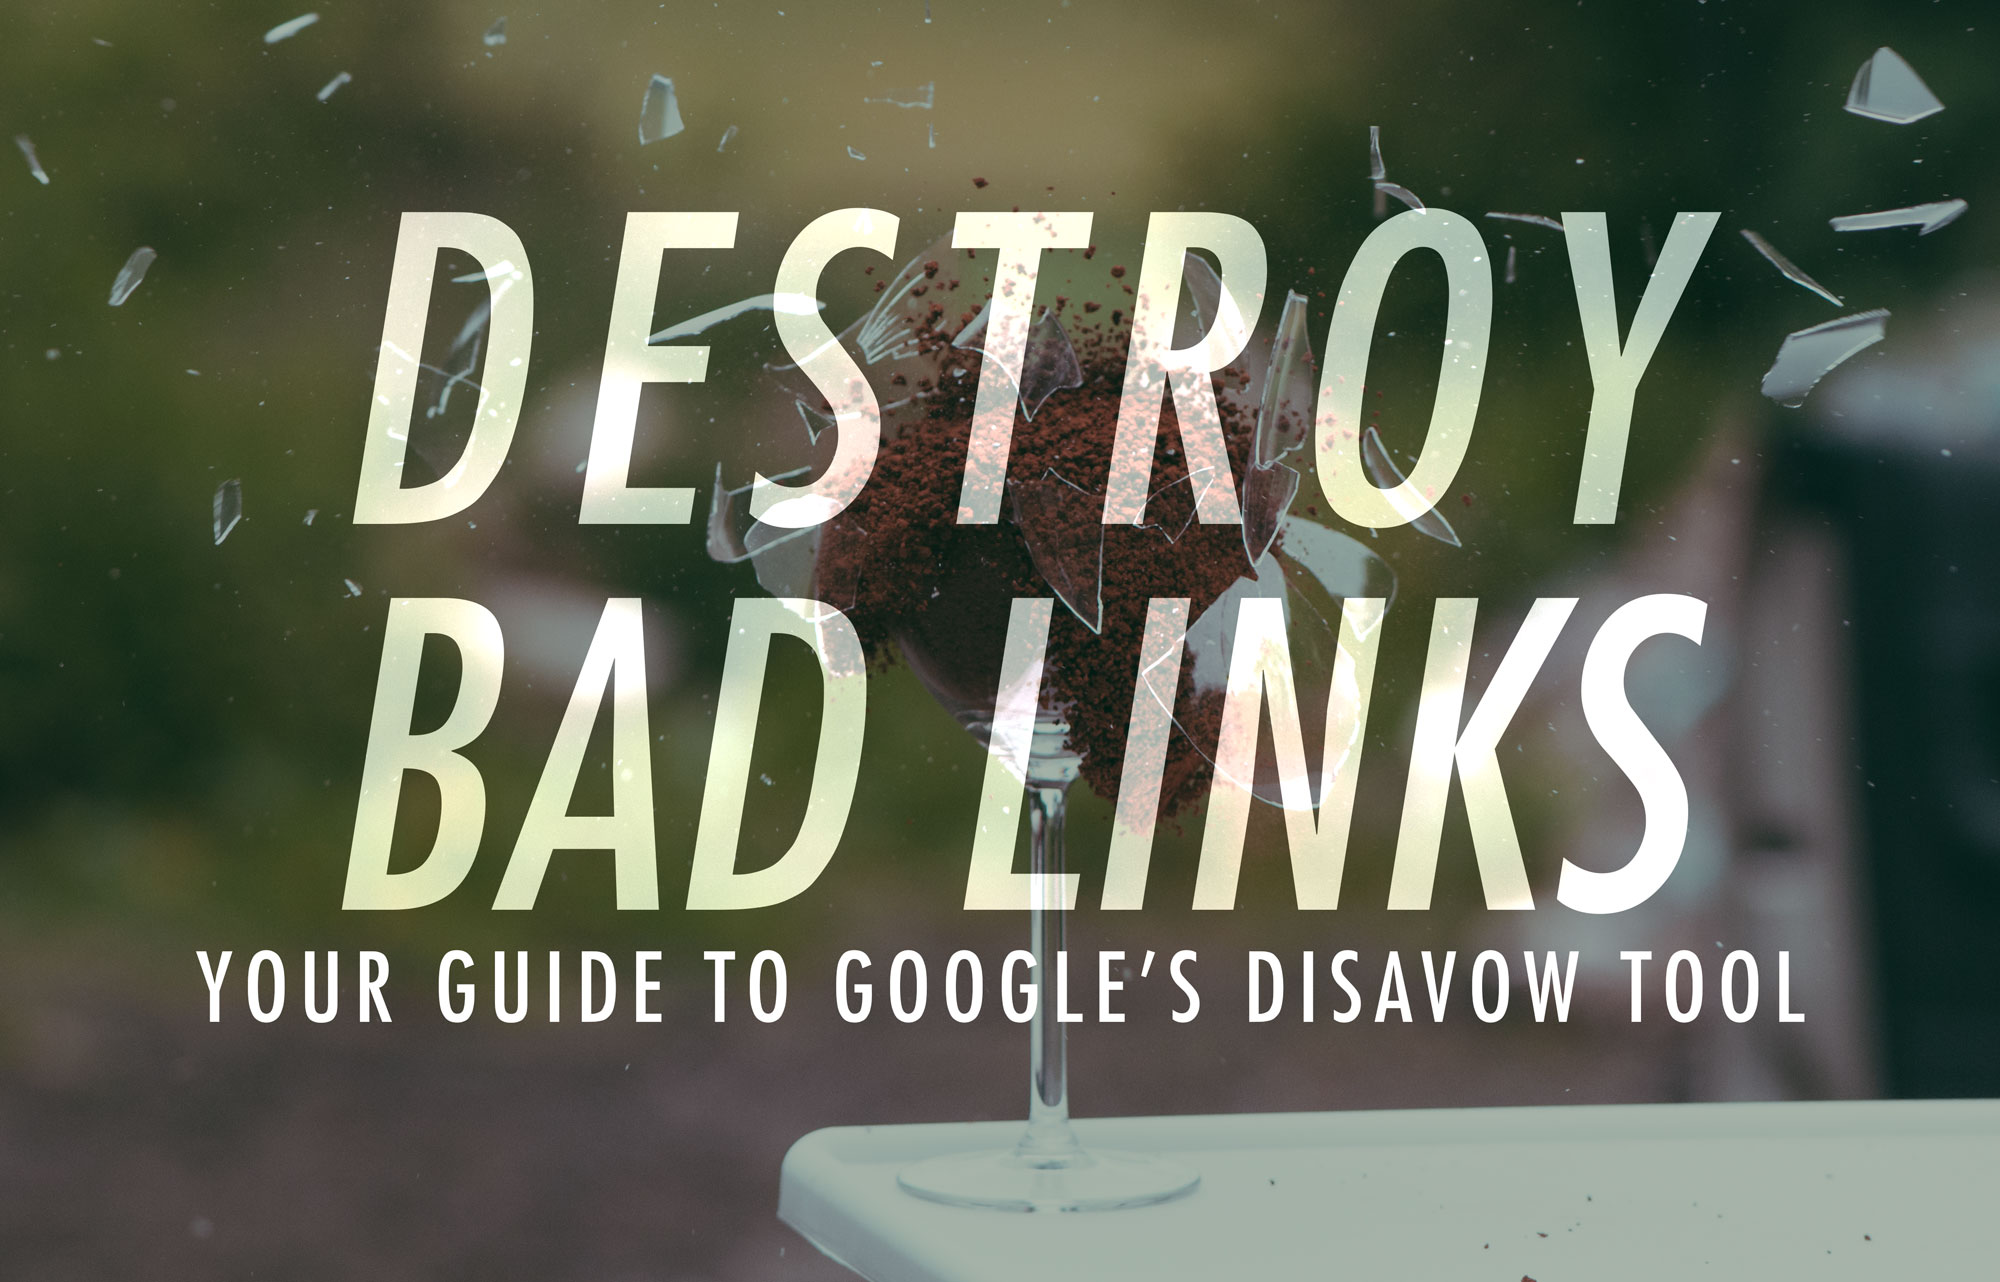 GOOGLE DISAVOW TOOL BANNER